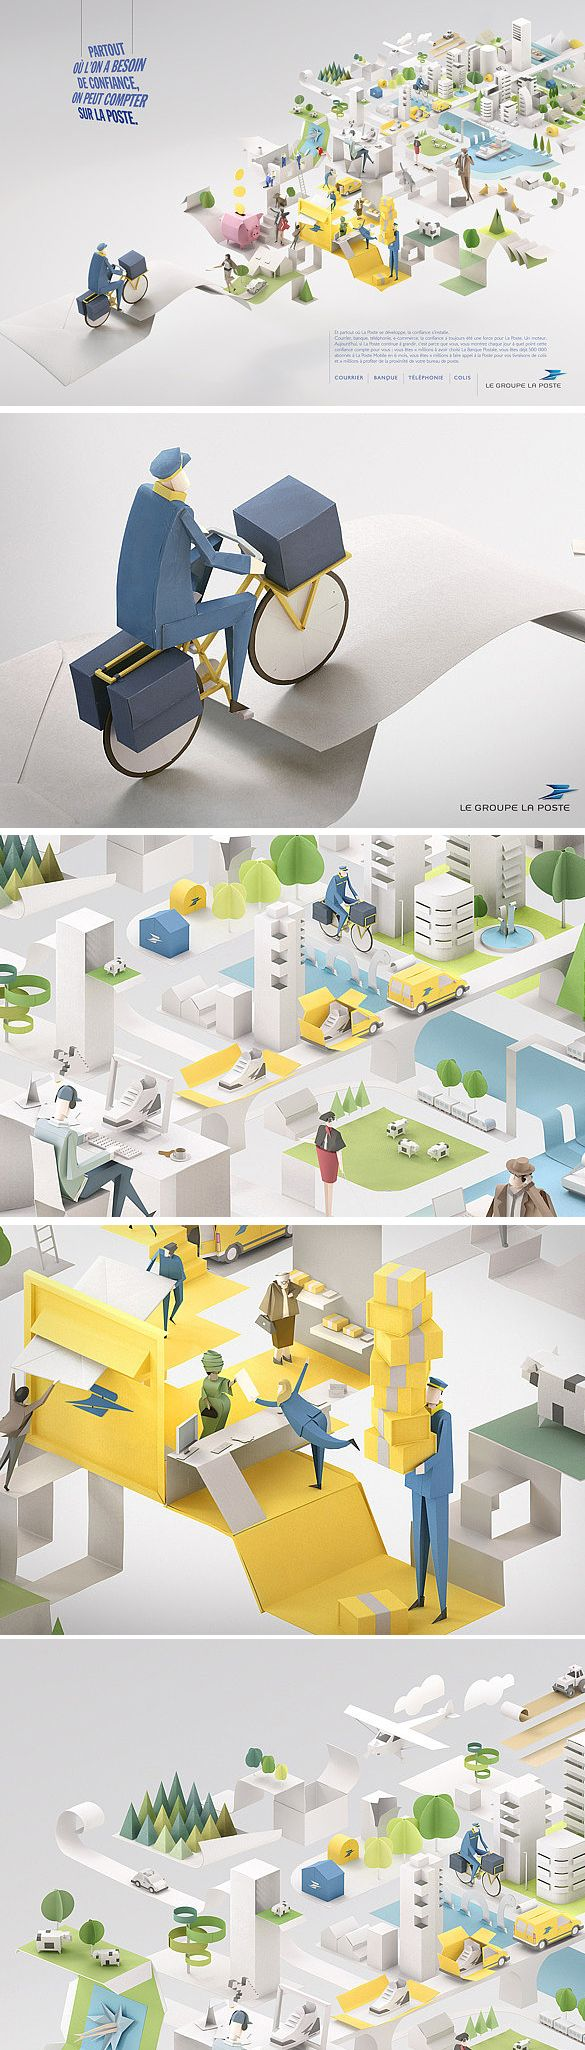 La Poste by Peyranne Francois Art direction and design TV commercial and print campaign, directed by Edouard SALIER.